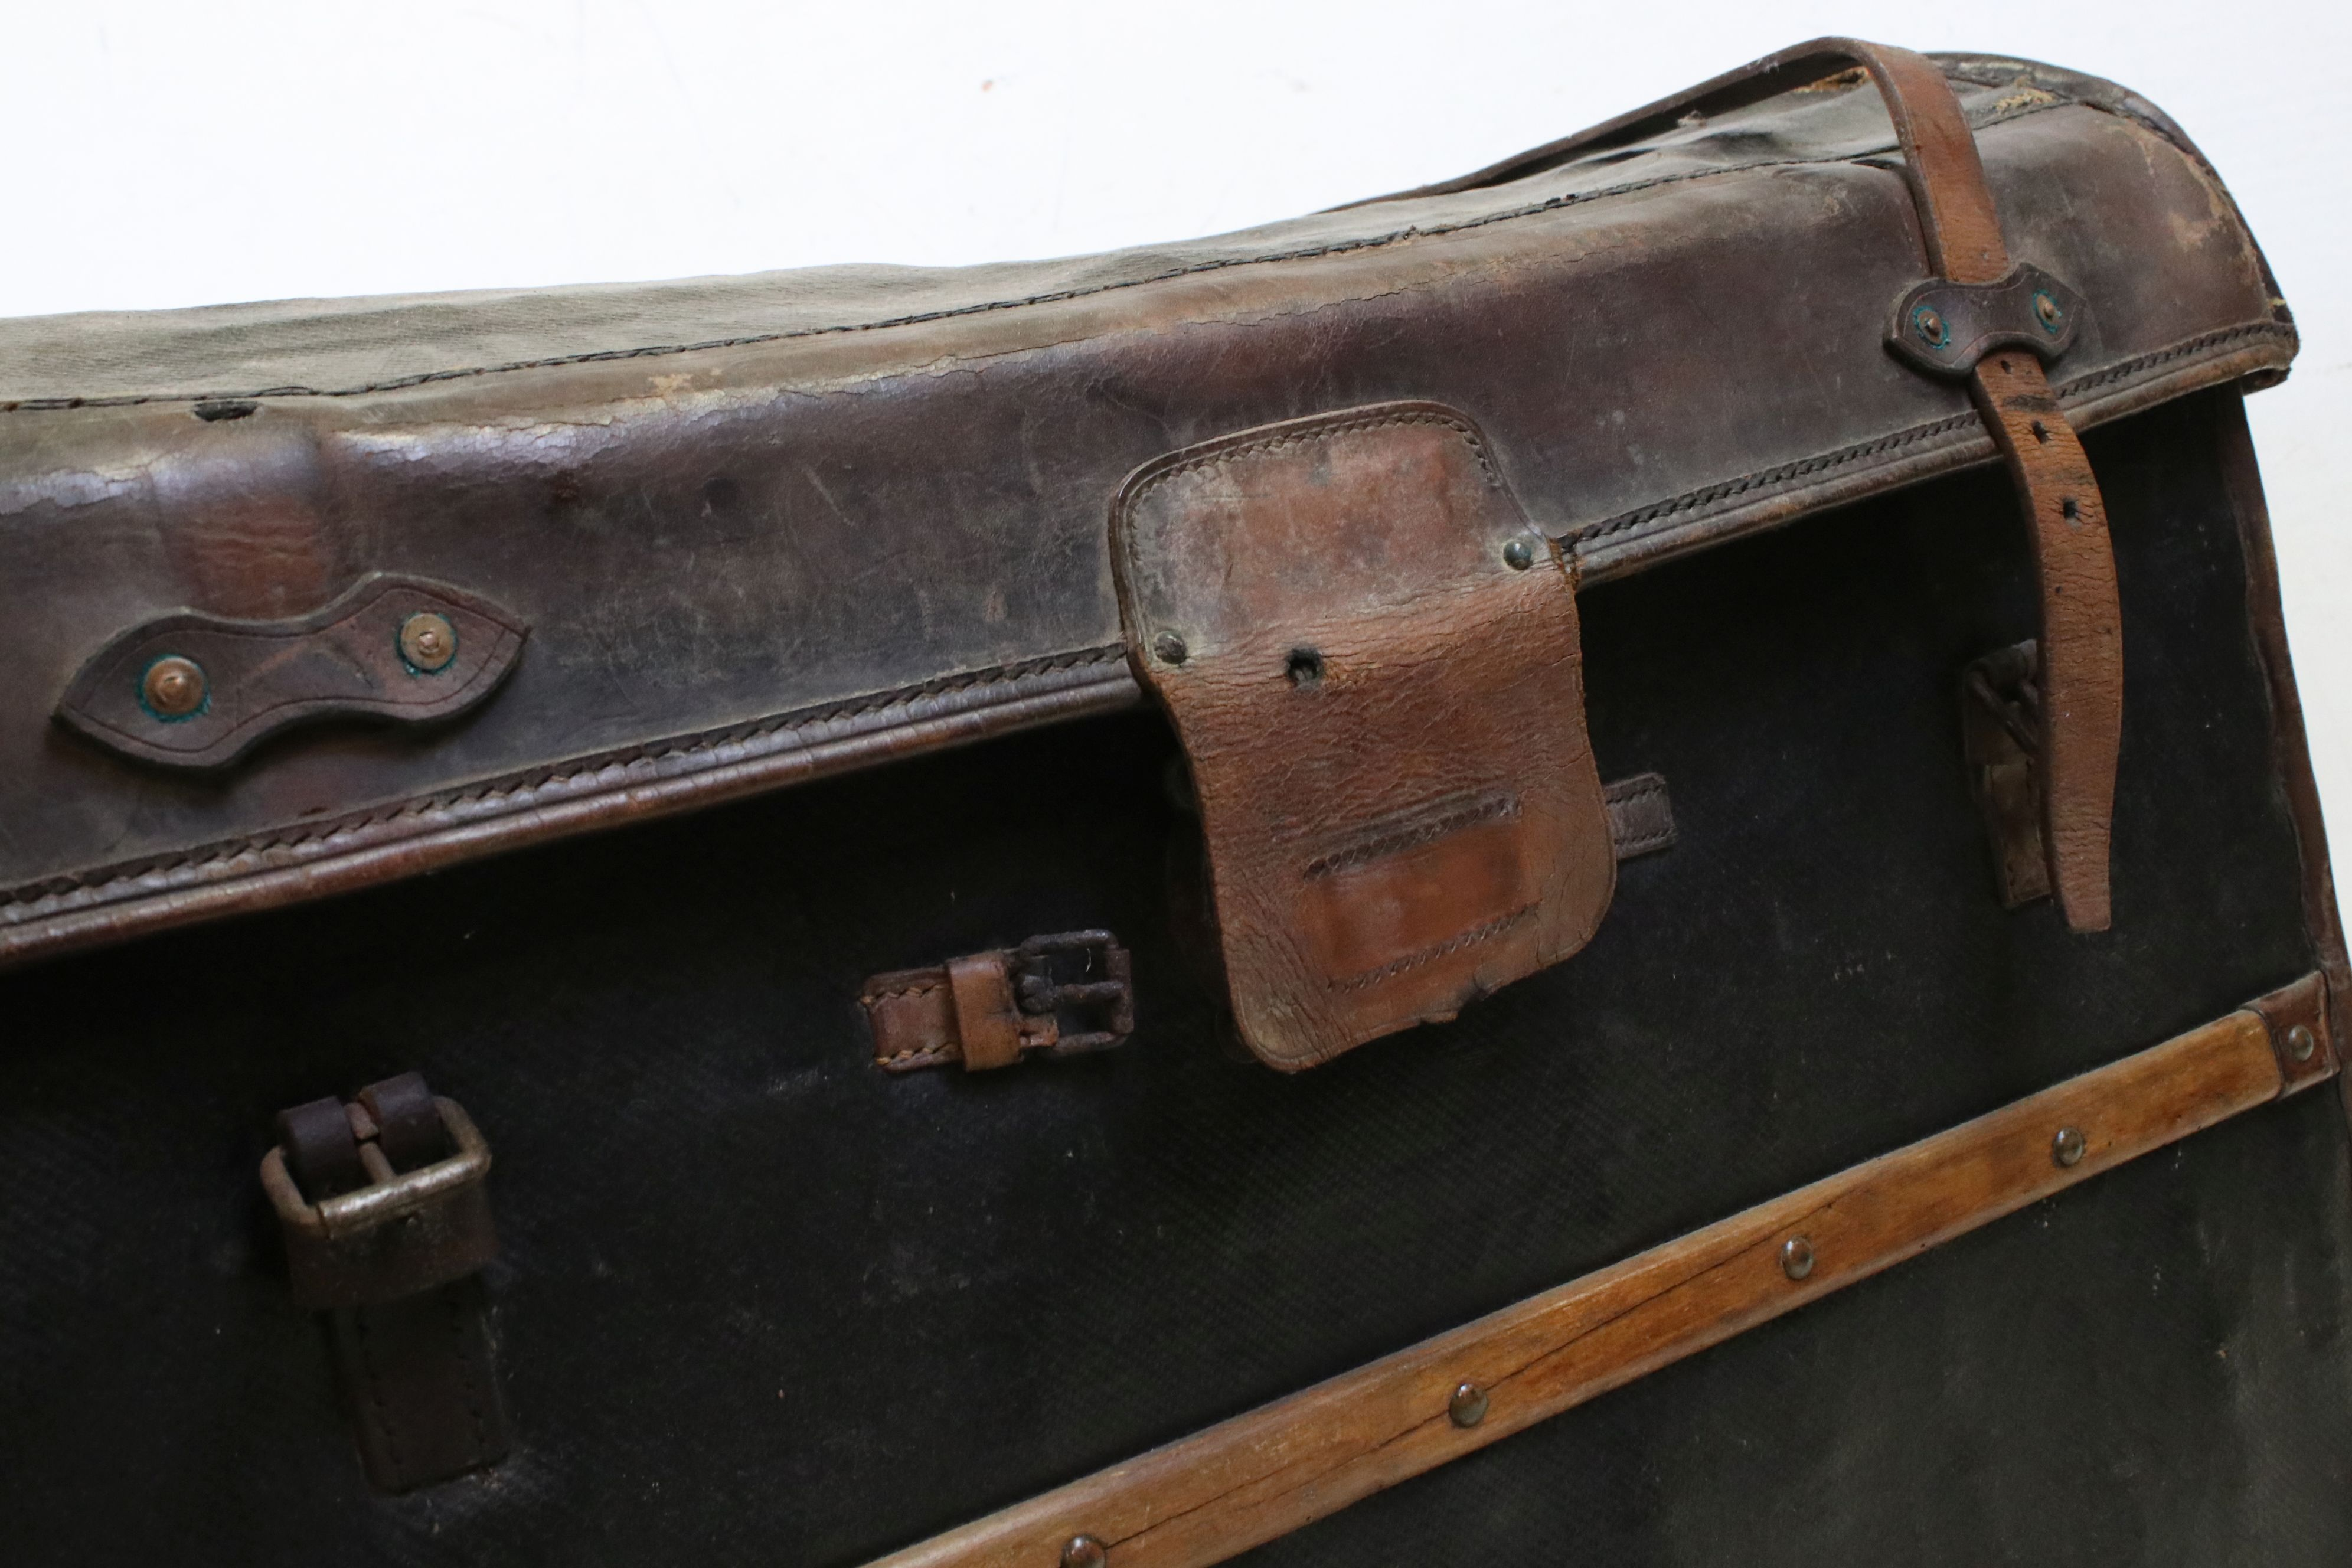 19th century Domed Top Wicker Leather Bound Travelling Trunk with Drop-in Tray, 82cms long x 66cms - Image 6 of 7